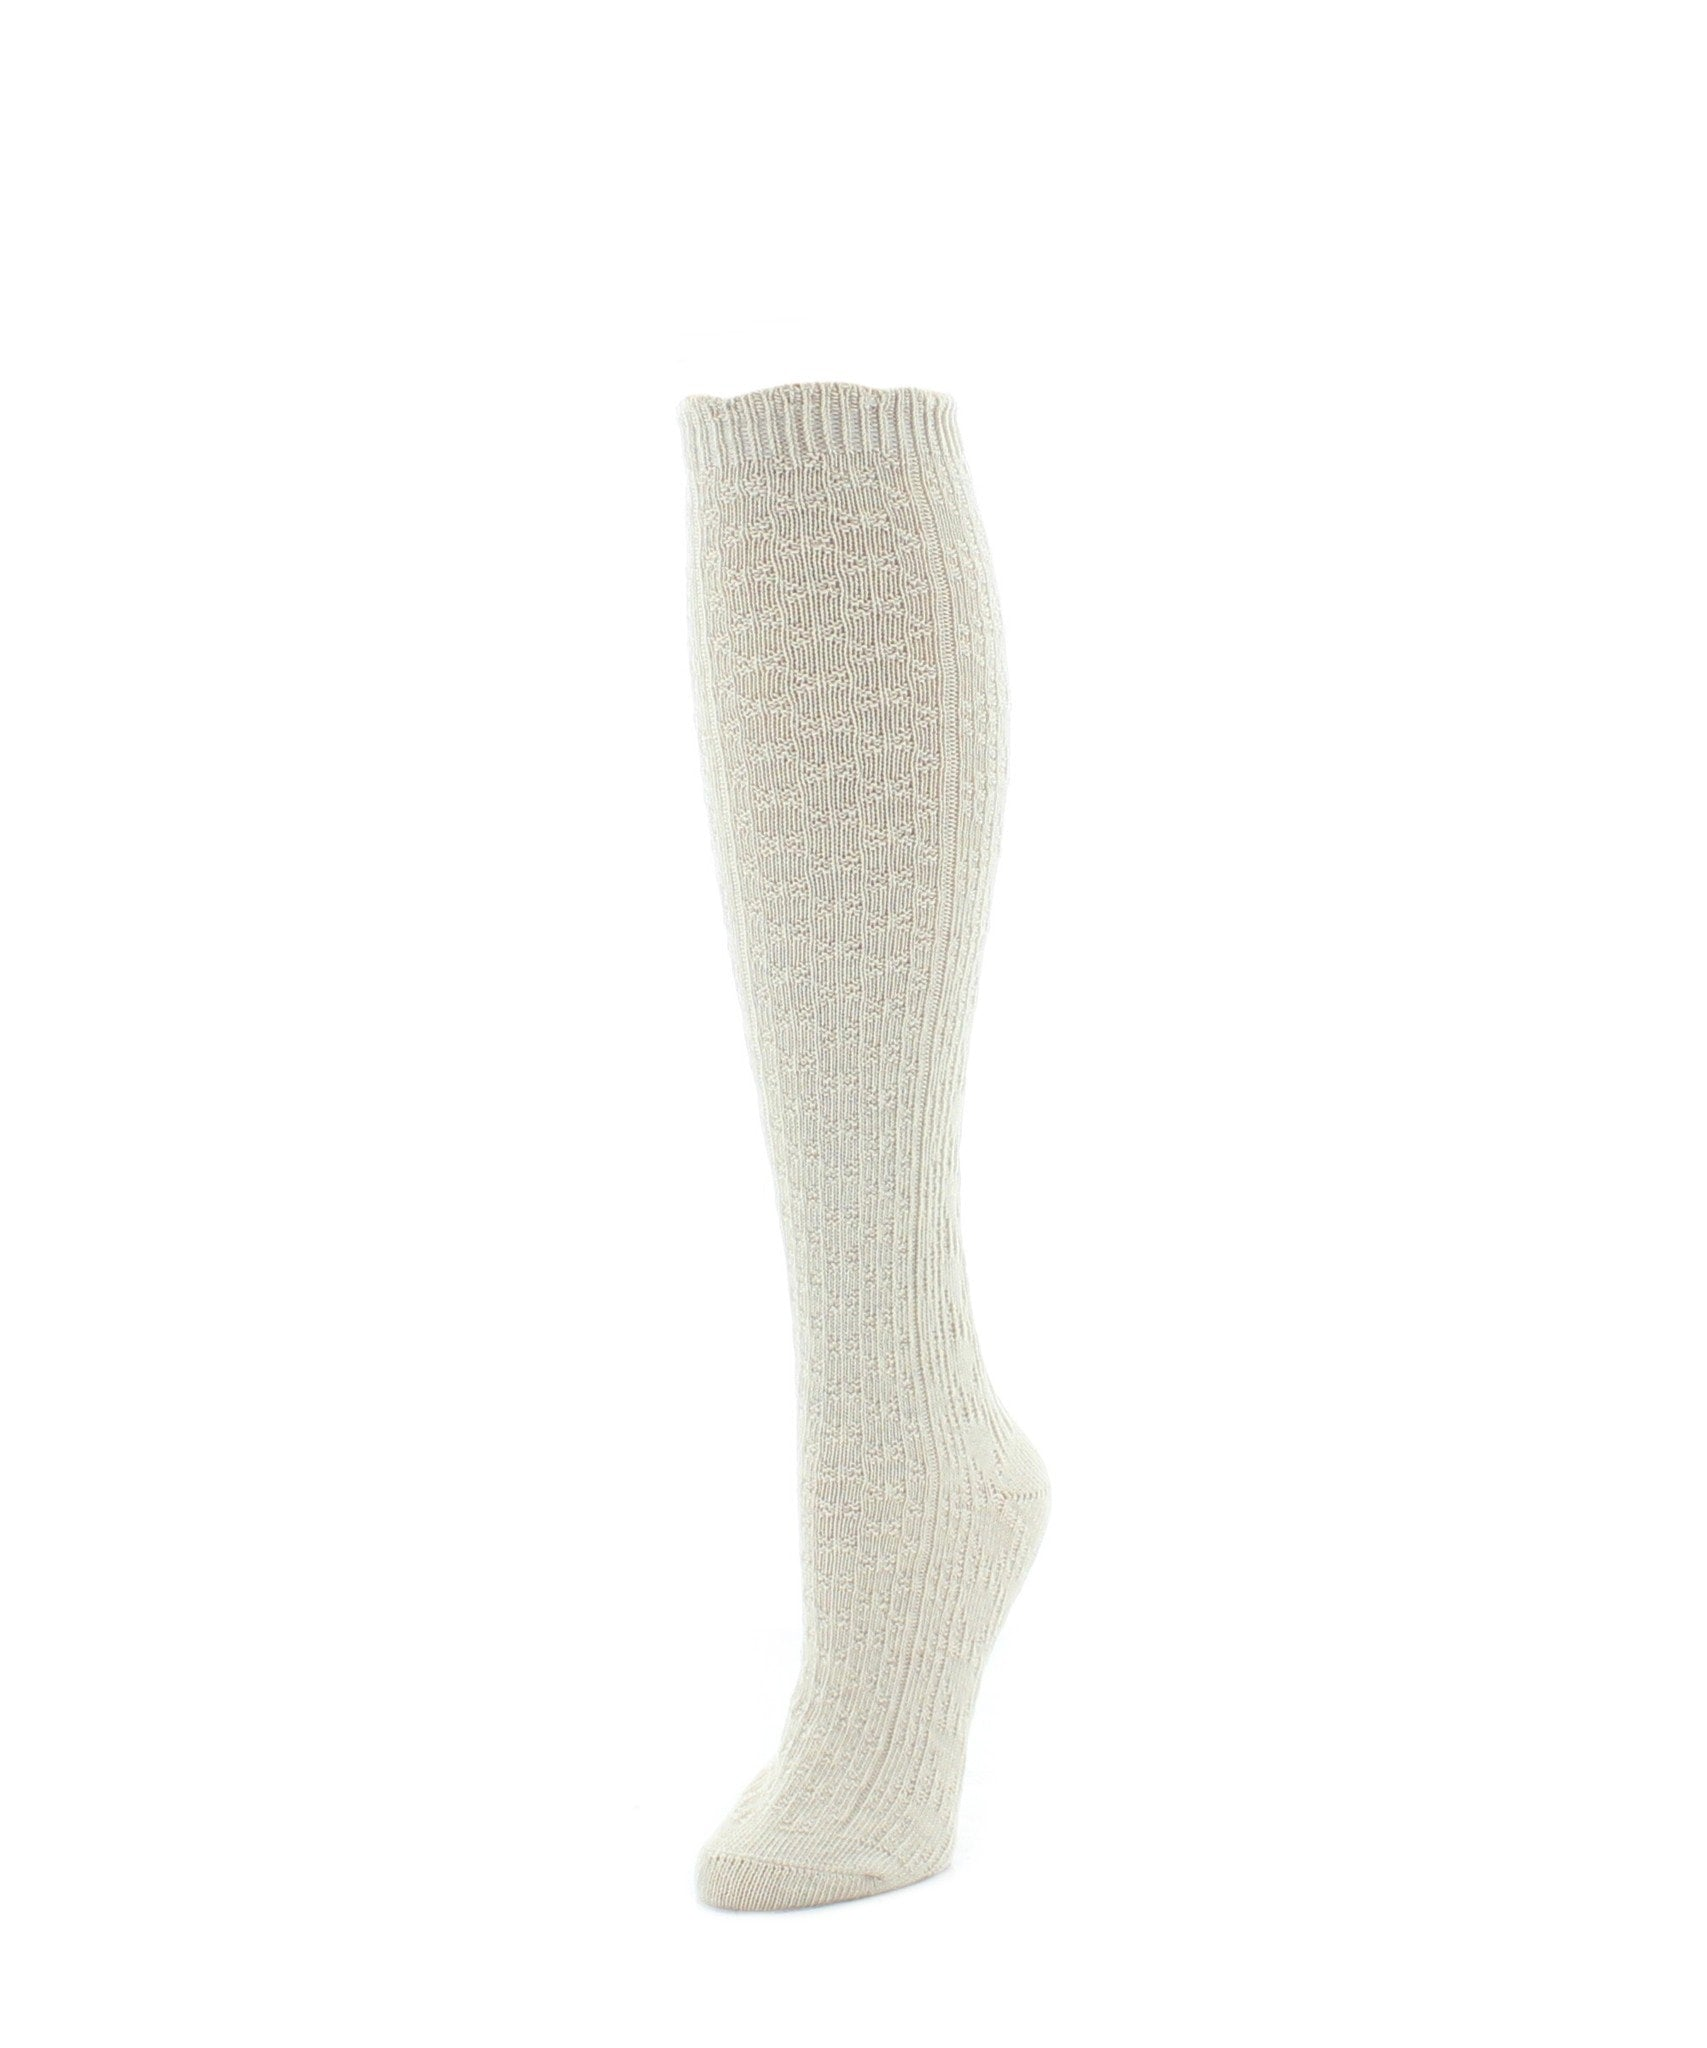 Knee High Socks | Women's Socks | Diamond Ridged - MeMoi - 4